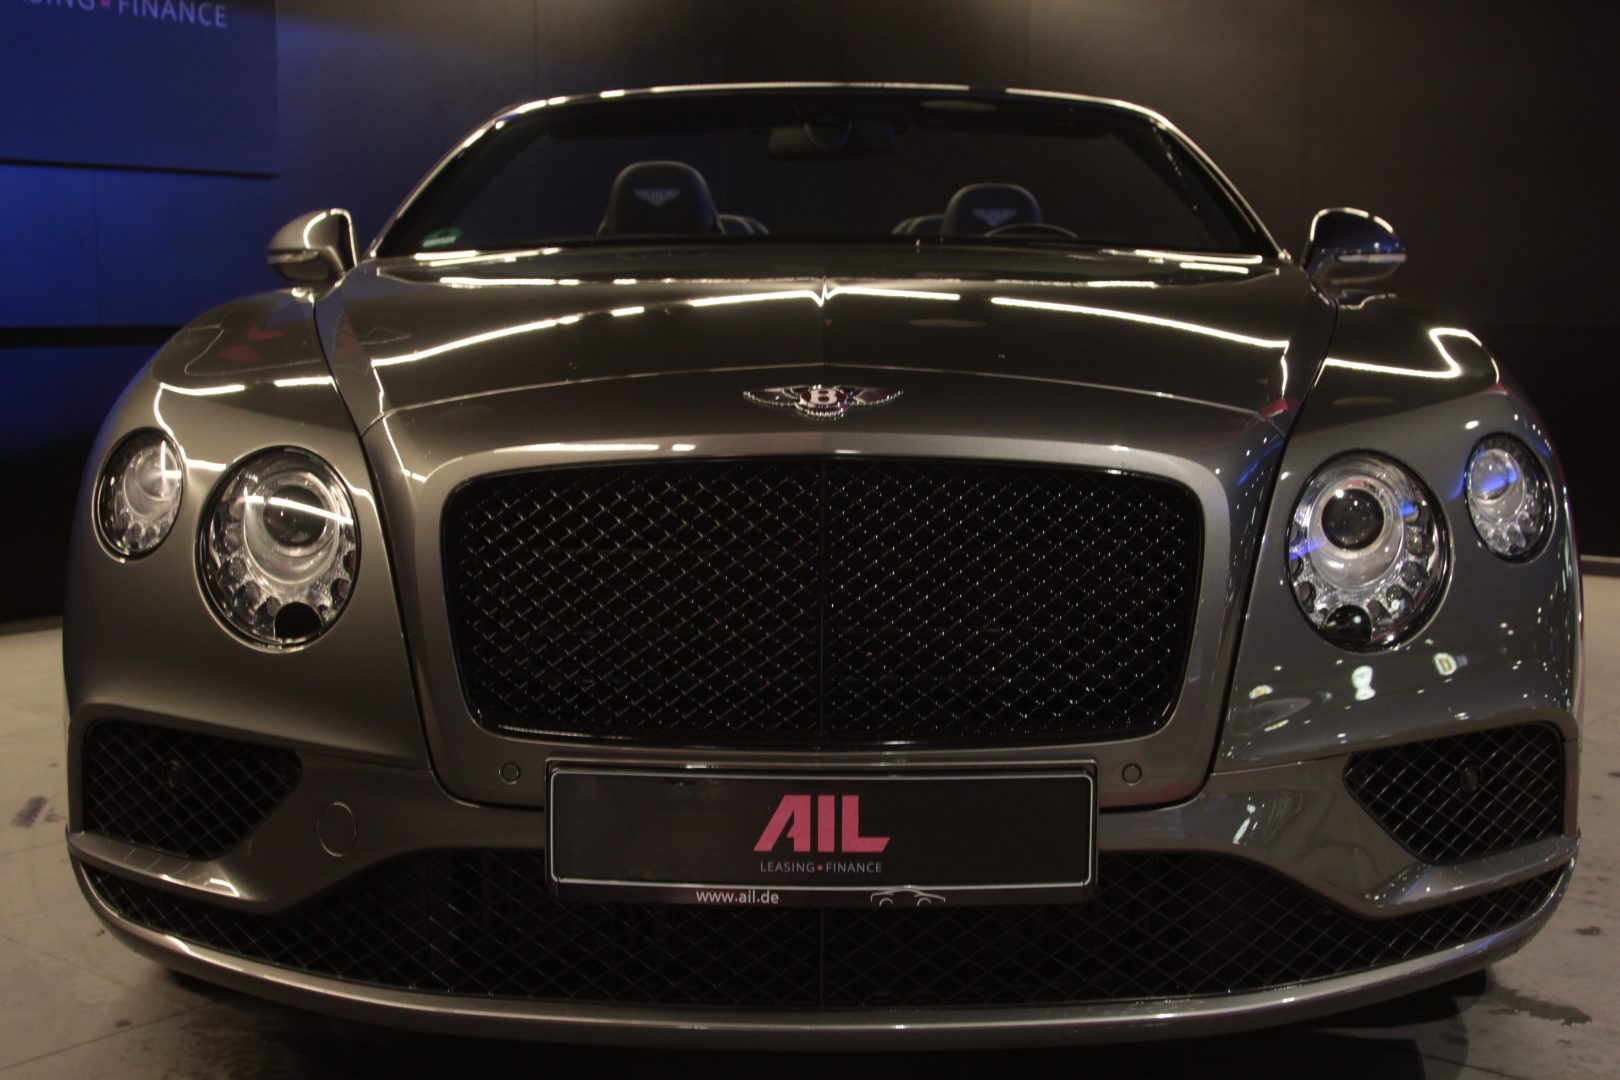 AIL Bentley Continental GTC V8 14